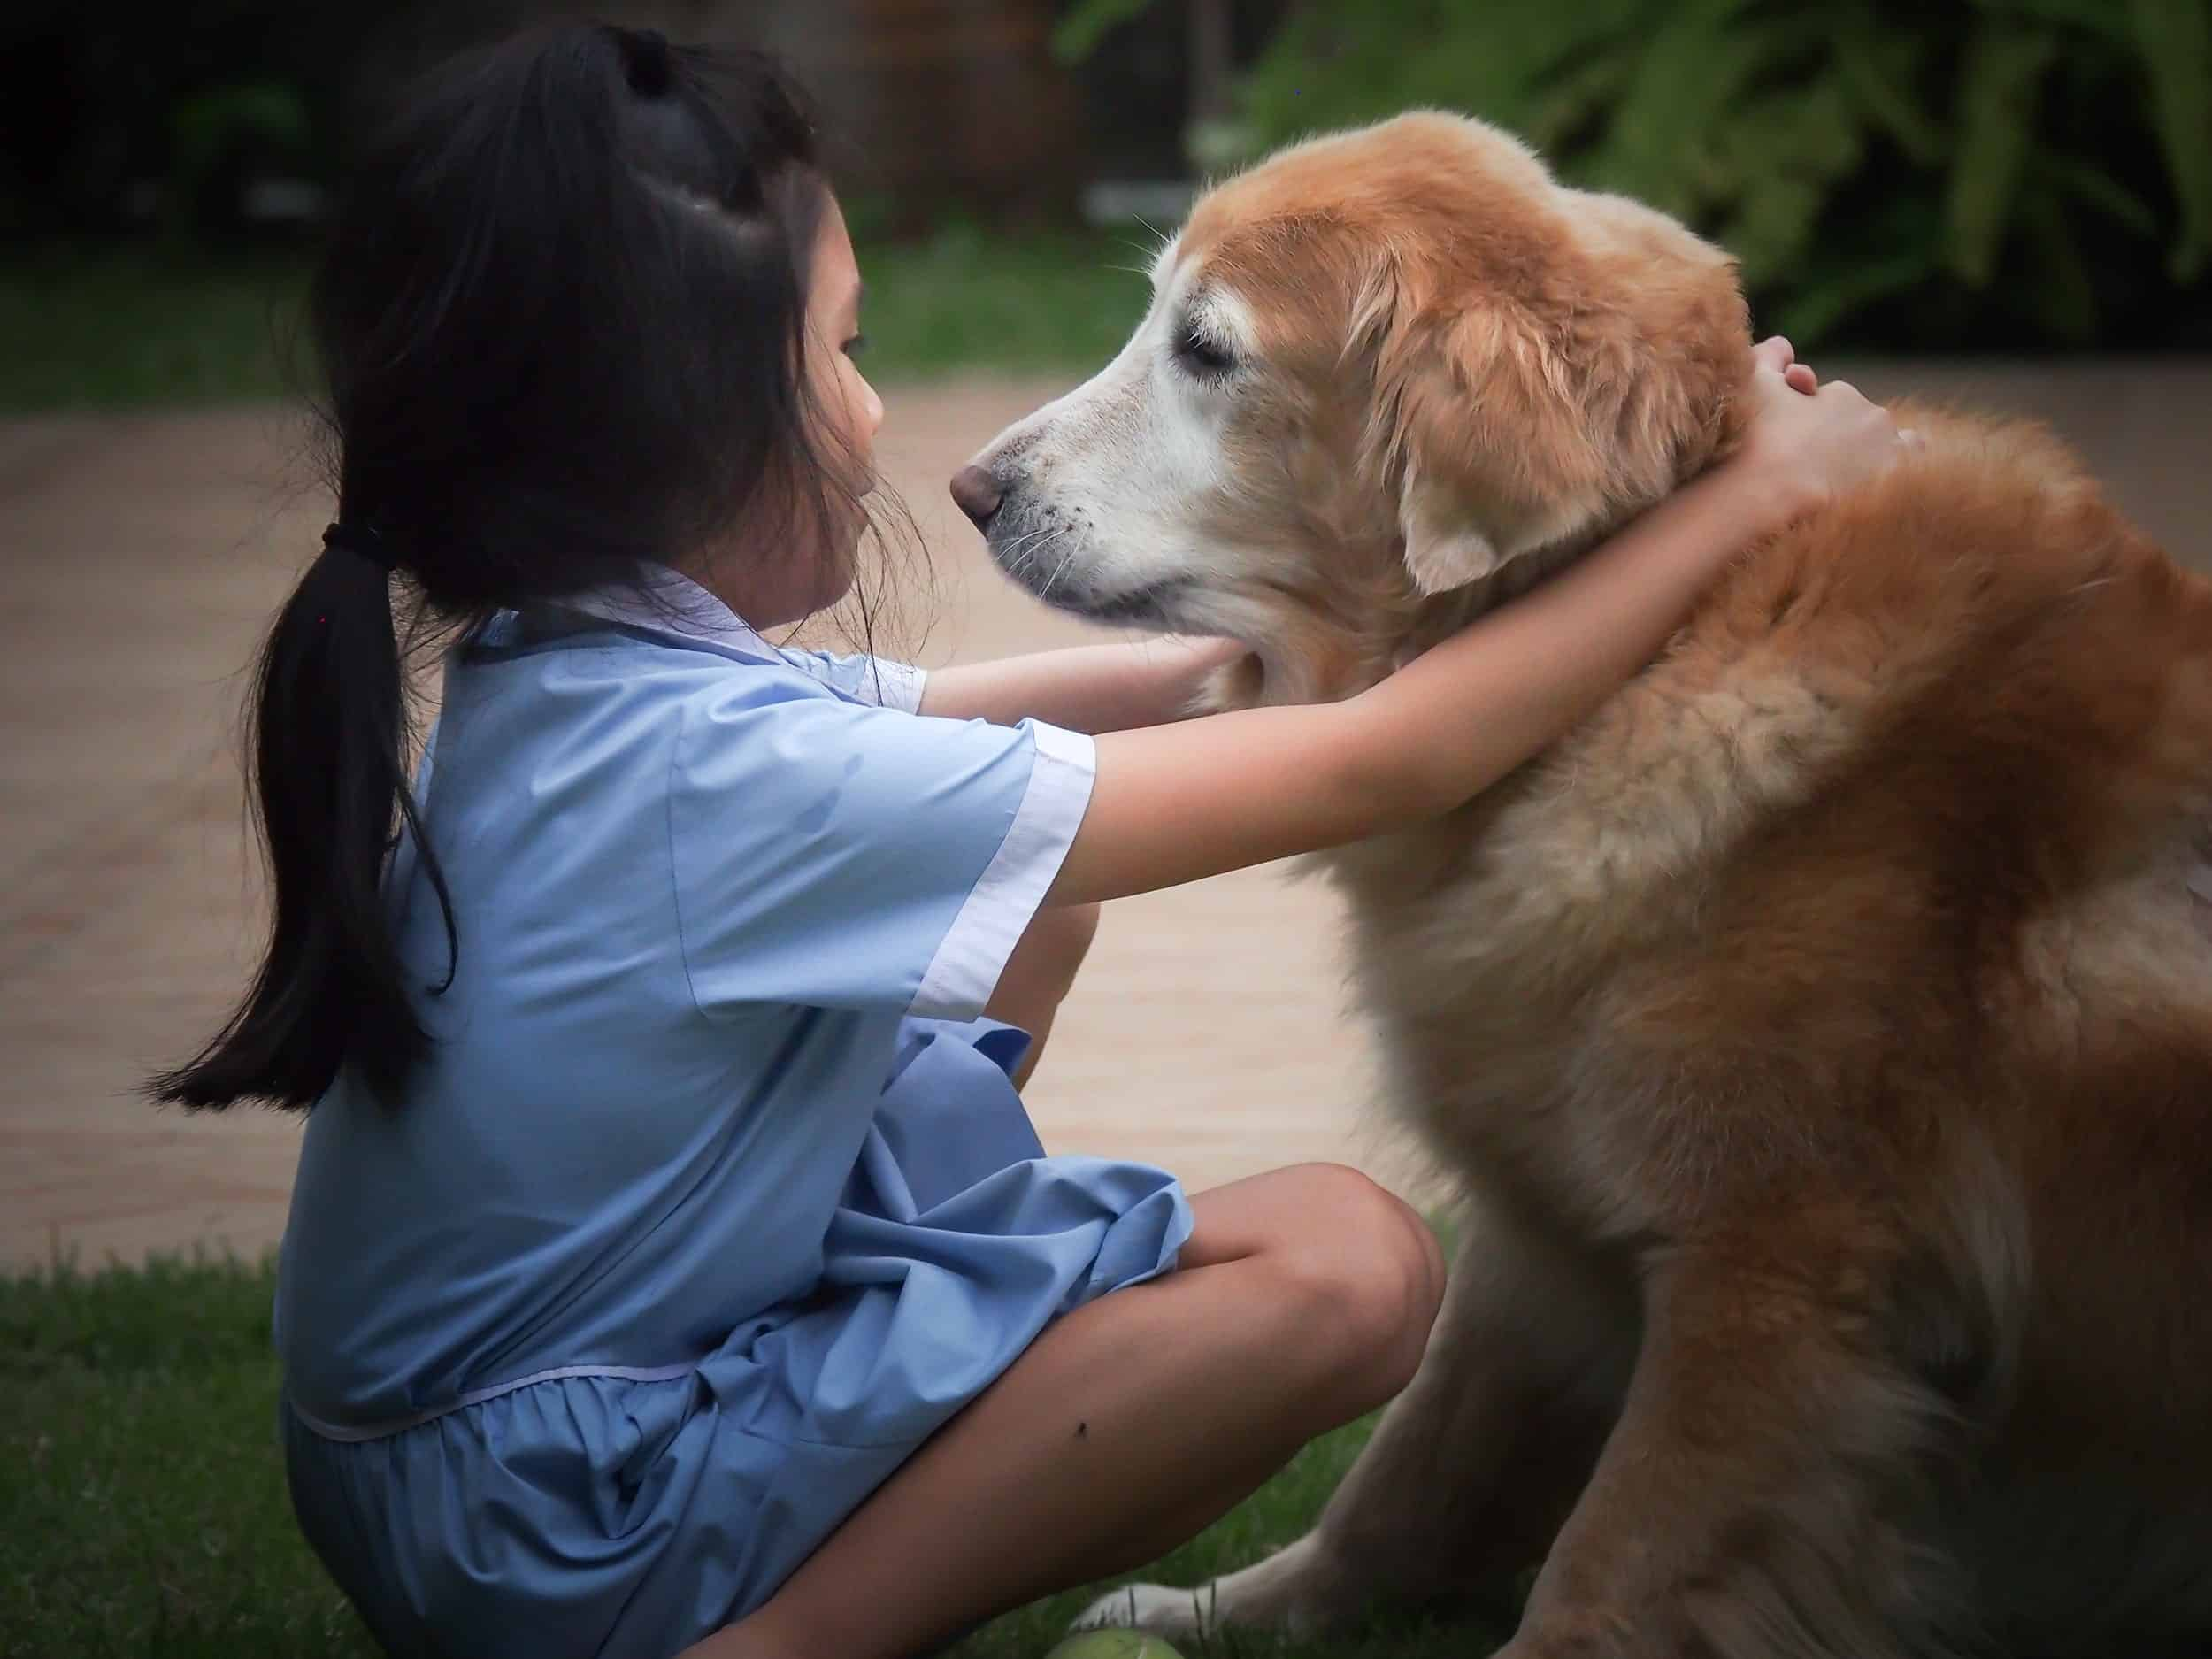 Young girl with old golden retriever. For many children, the loss of a pet is their first life experience of loss or death.